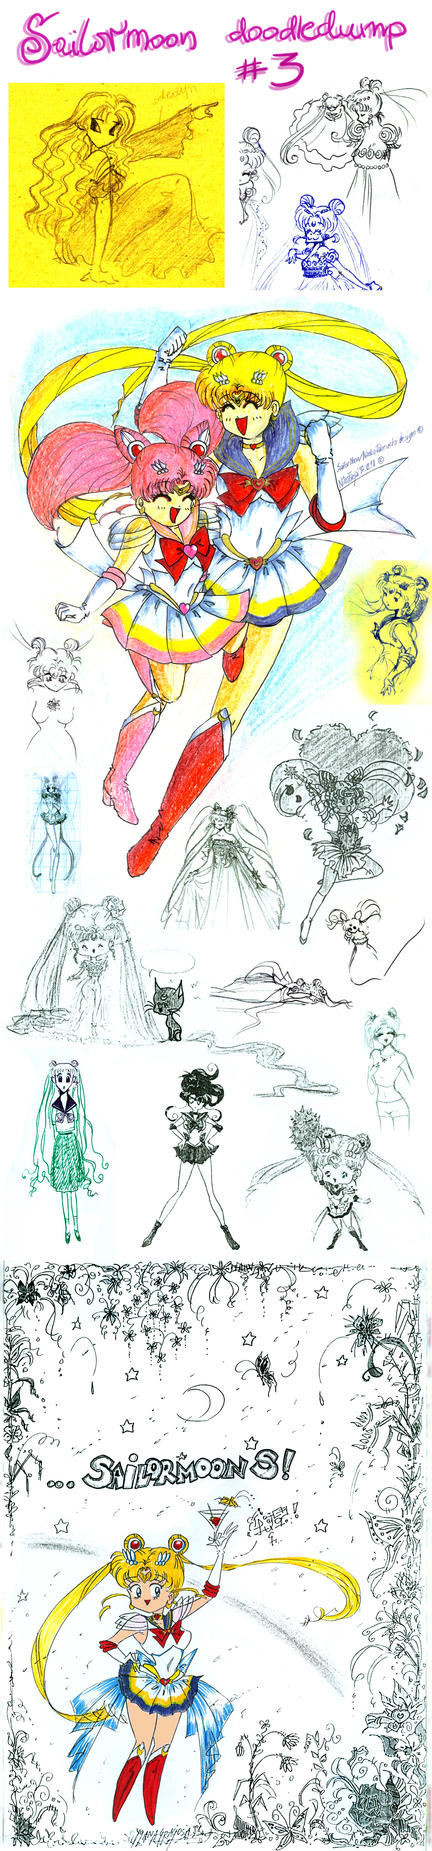 Sailormoon doodledump 3 by NitroFieja